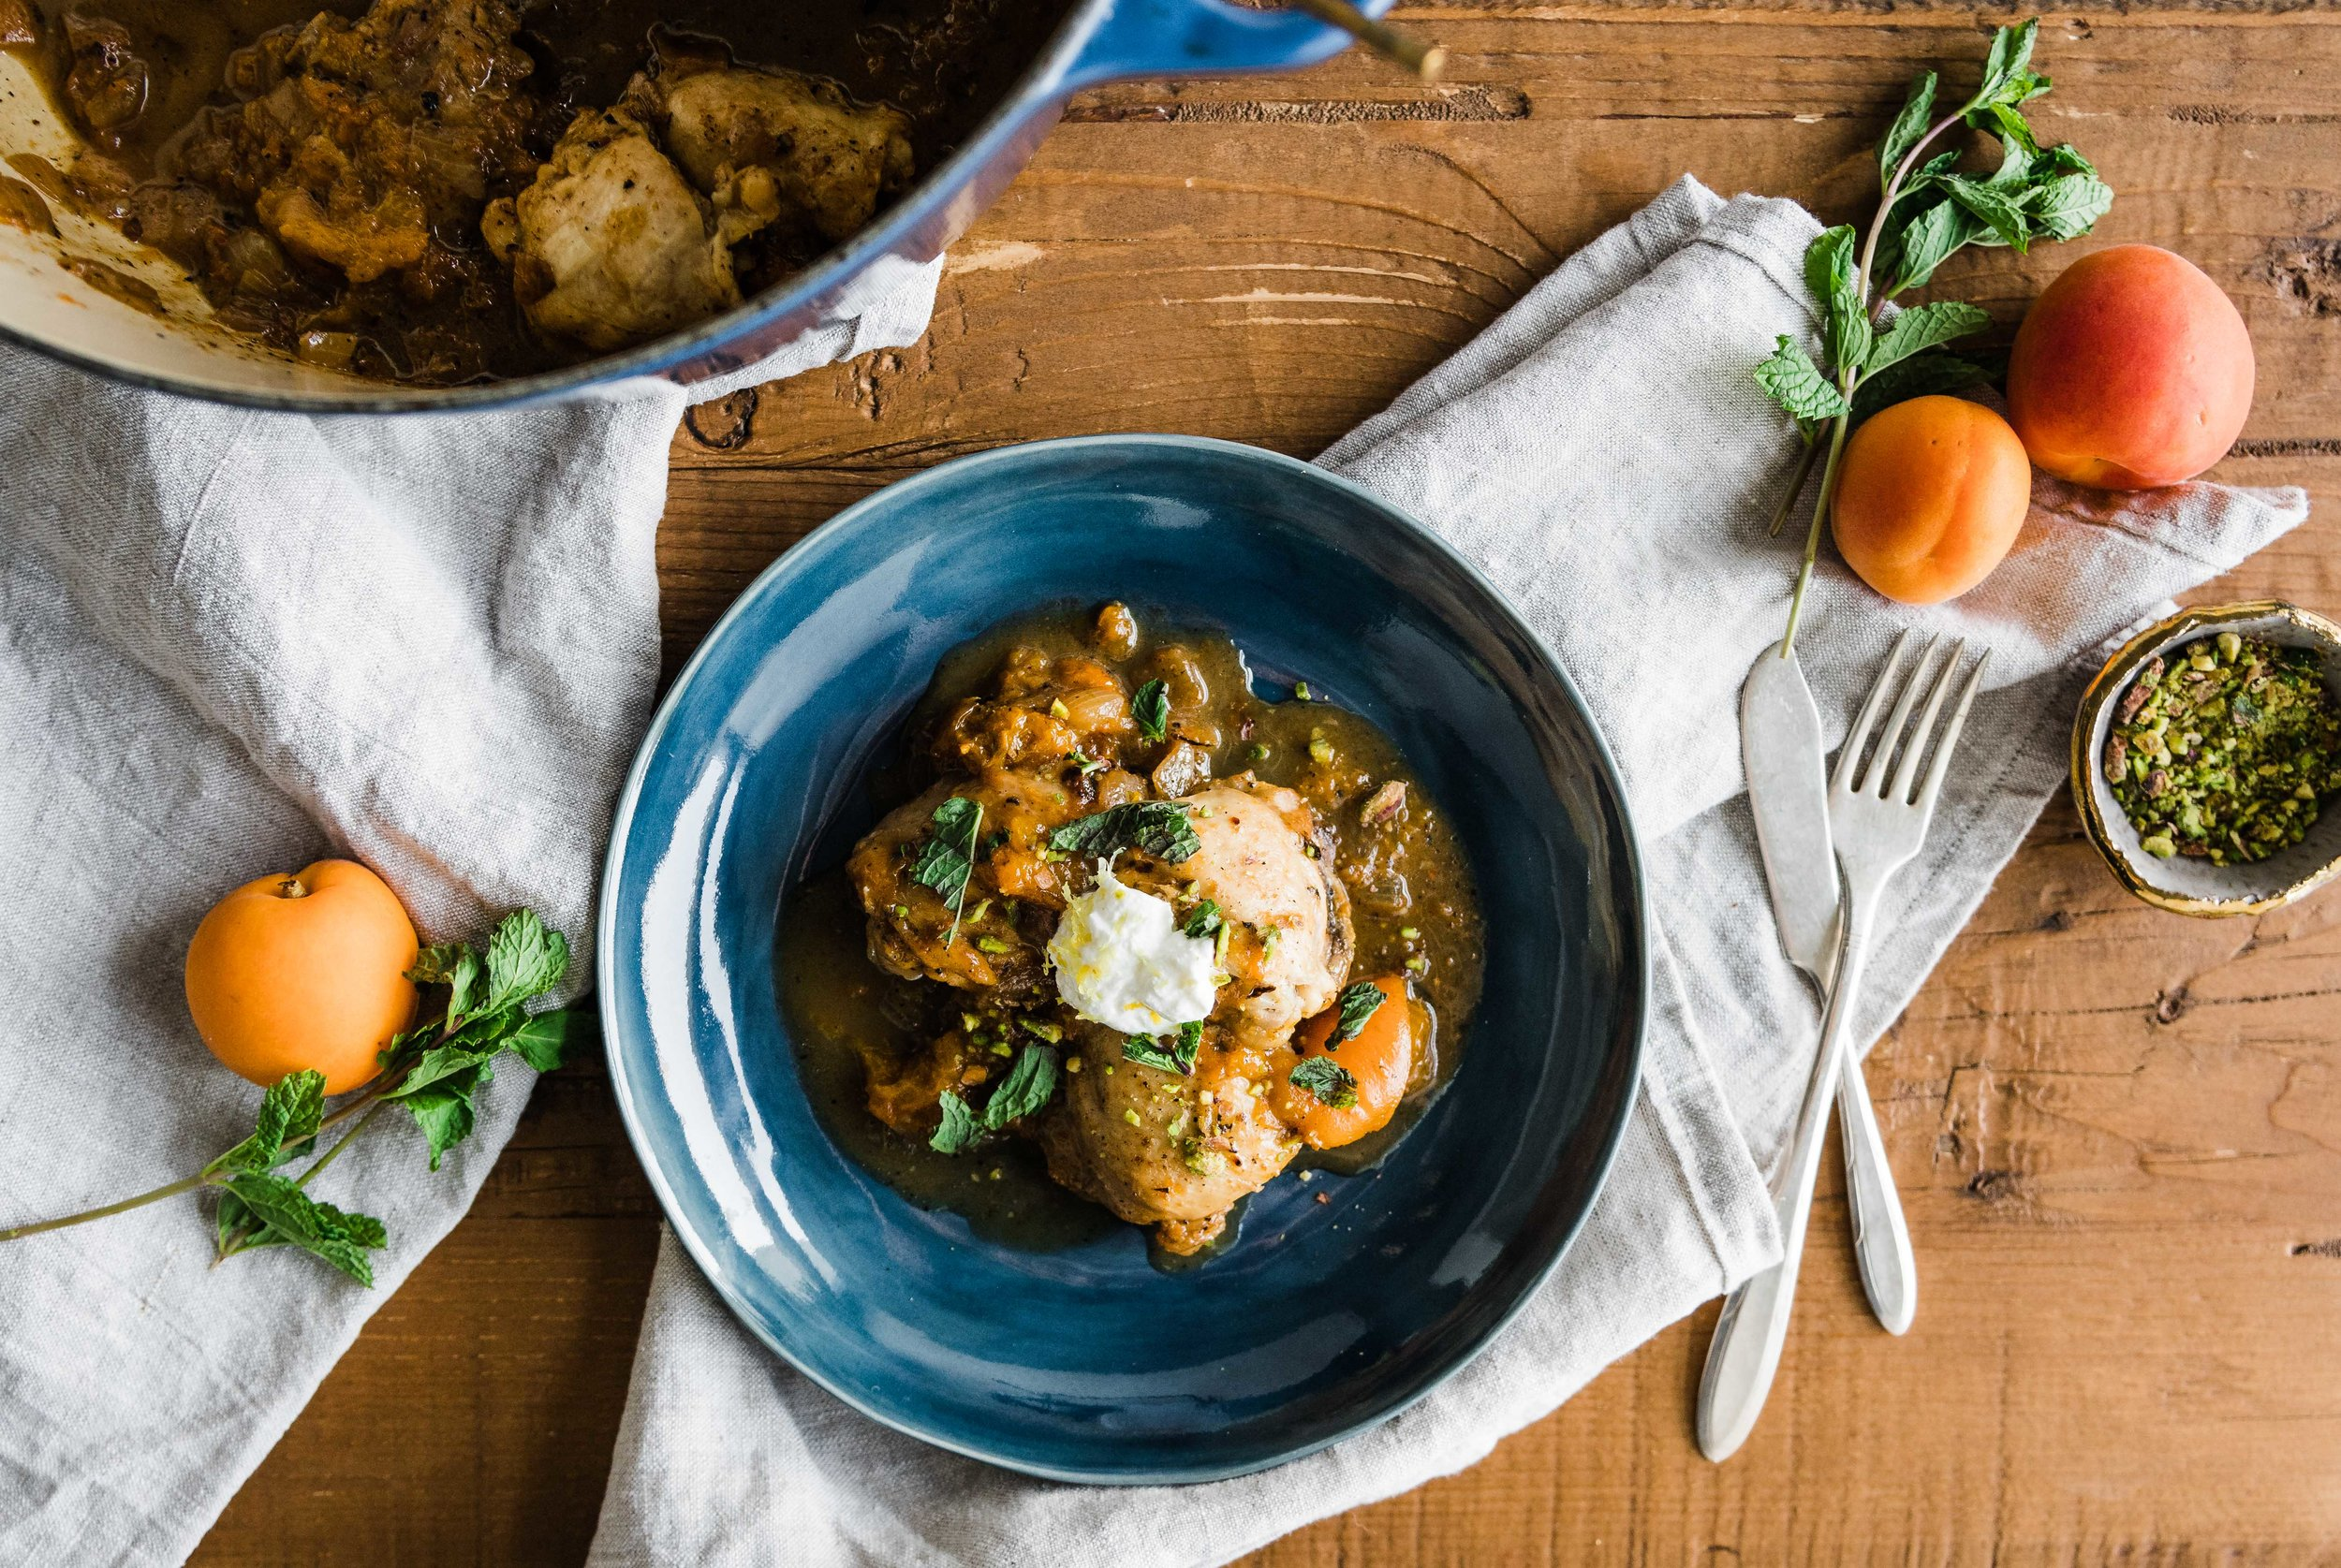 Apricot Chicken with Rosemary and Lemon Zested Yogurt